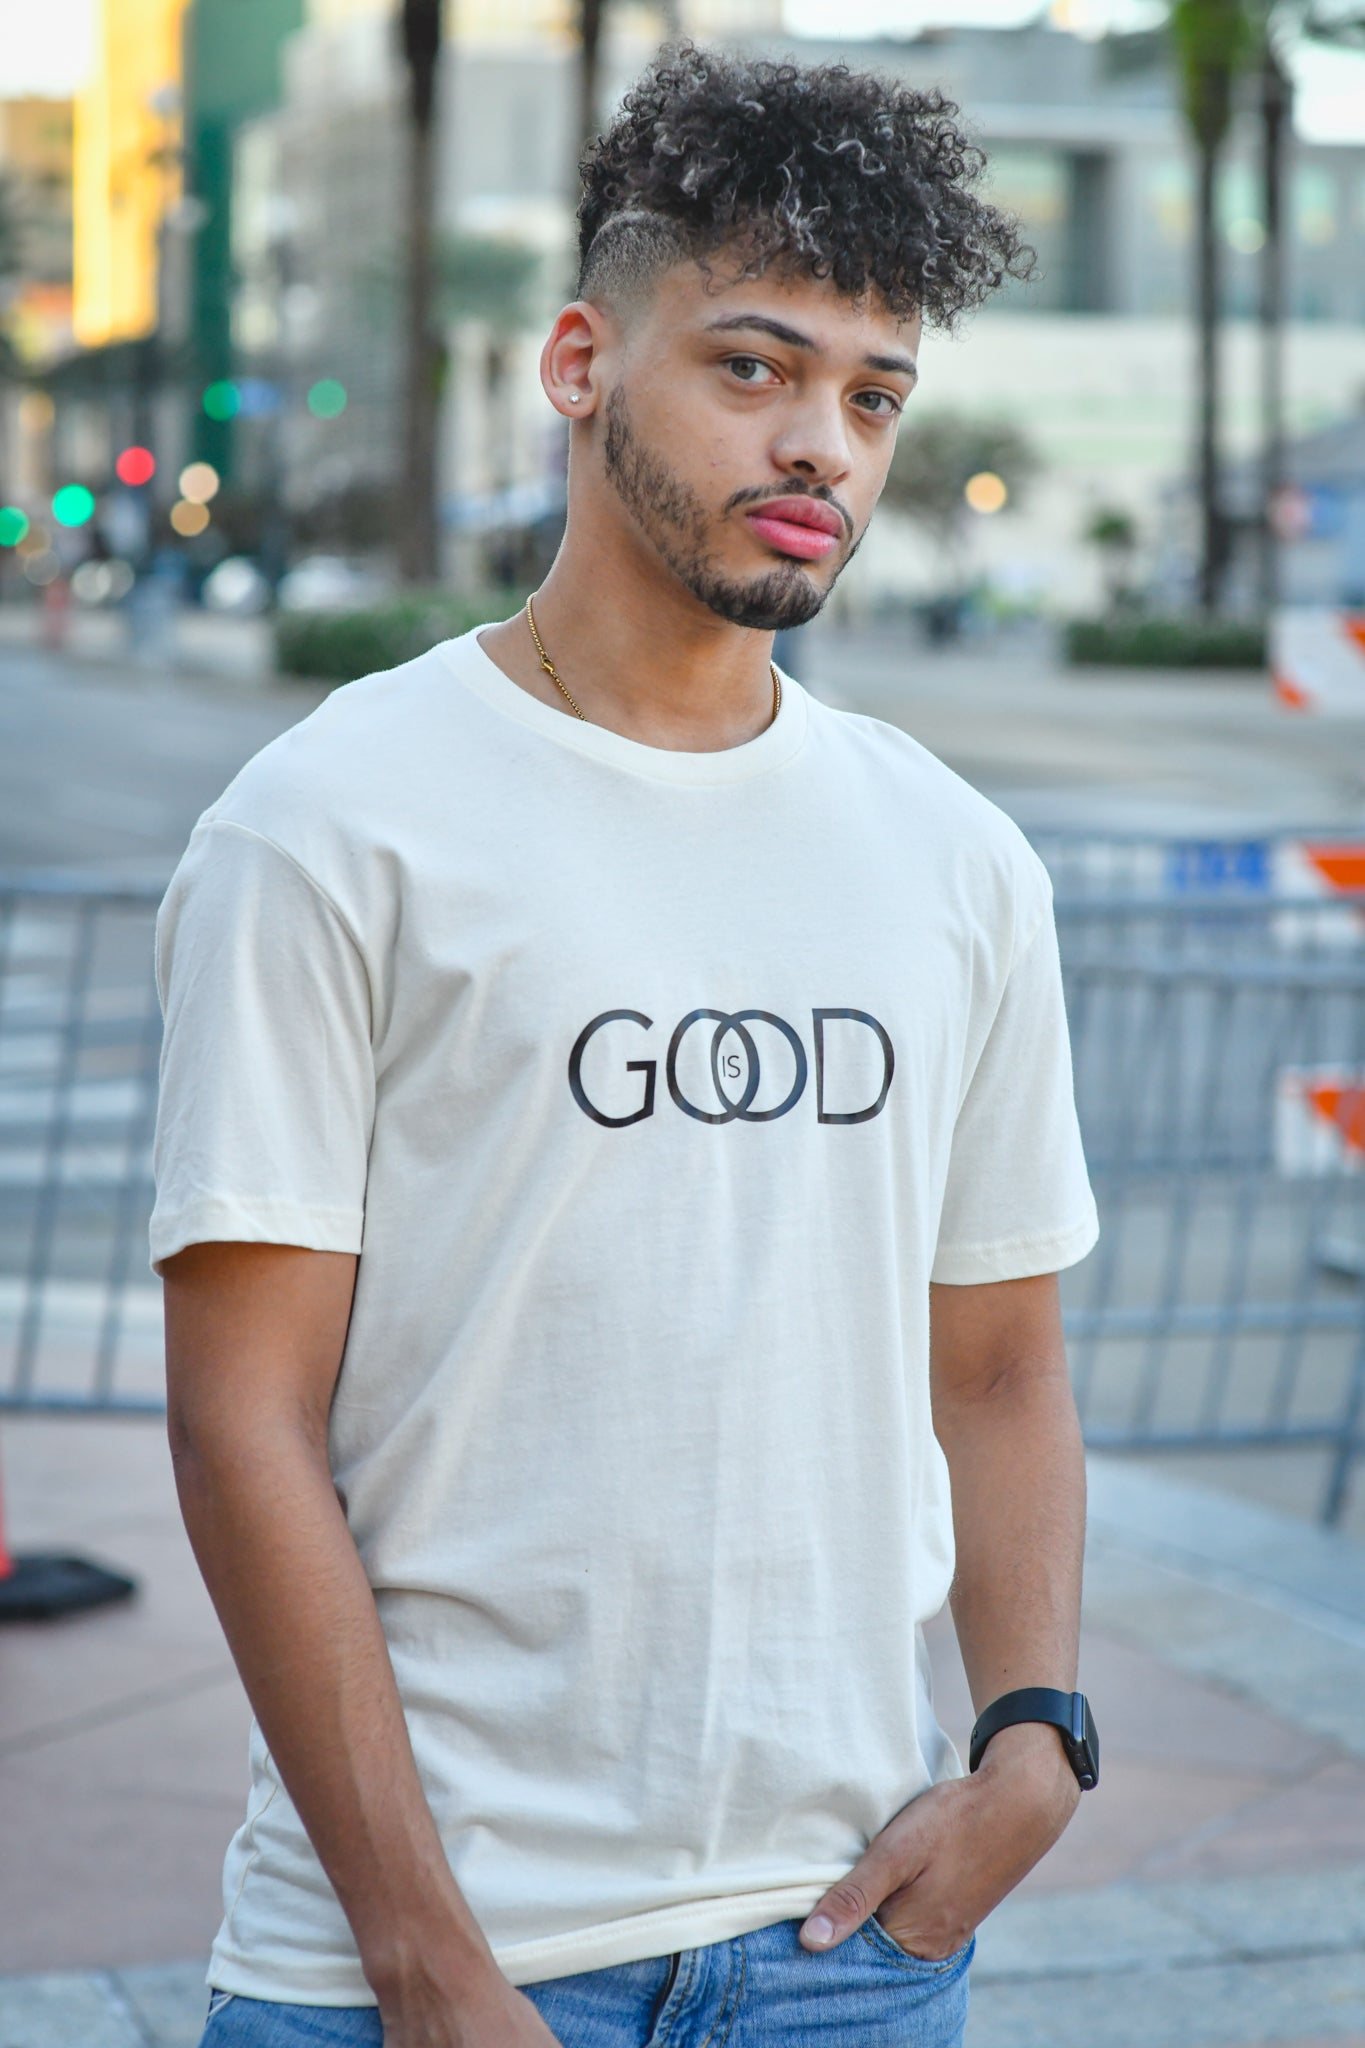 God is good - Shop La's Showroom